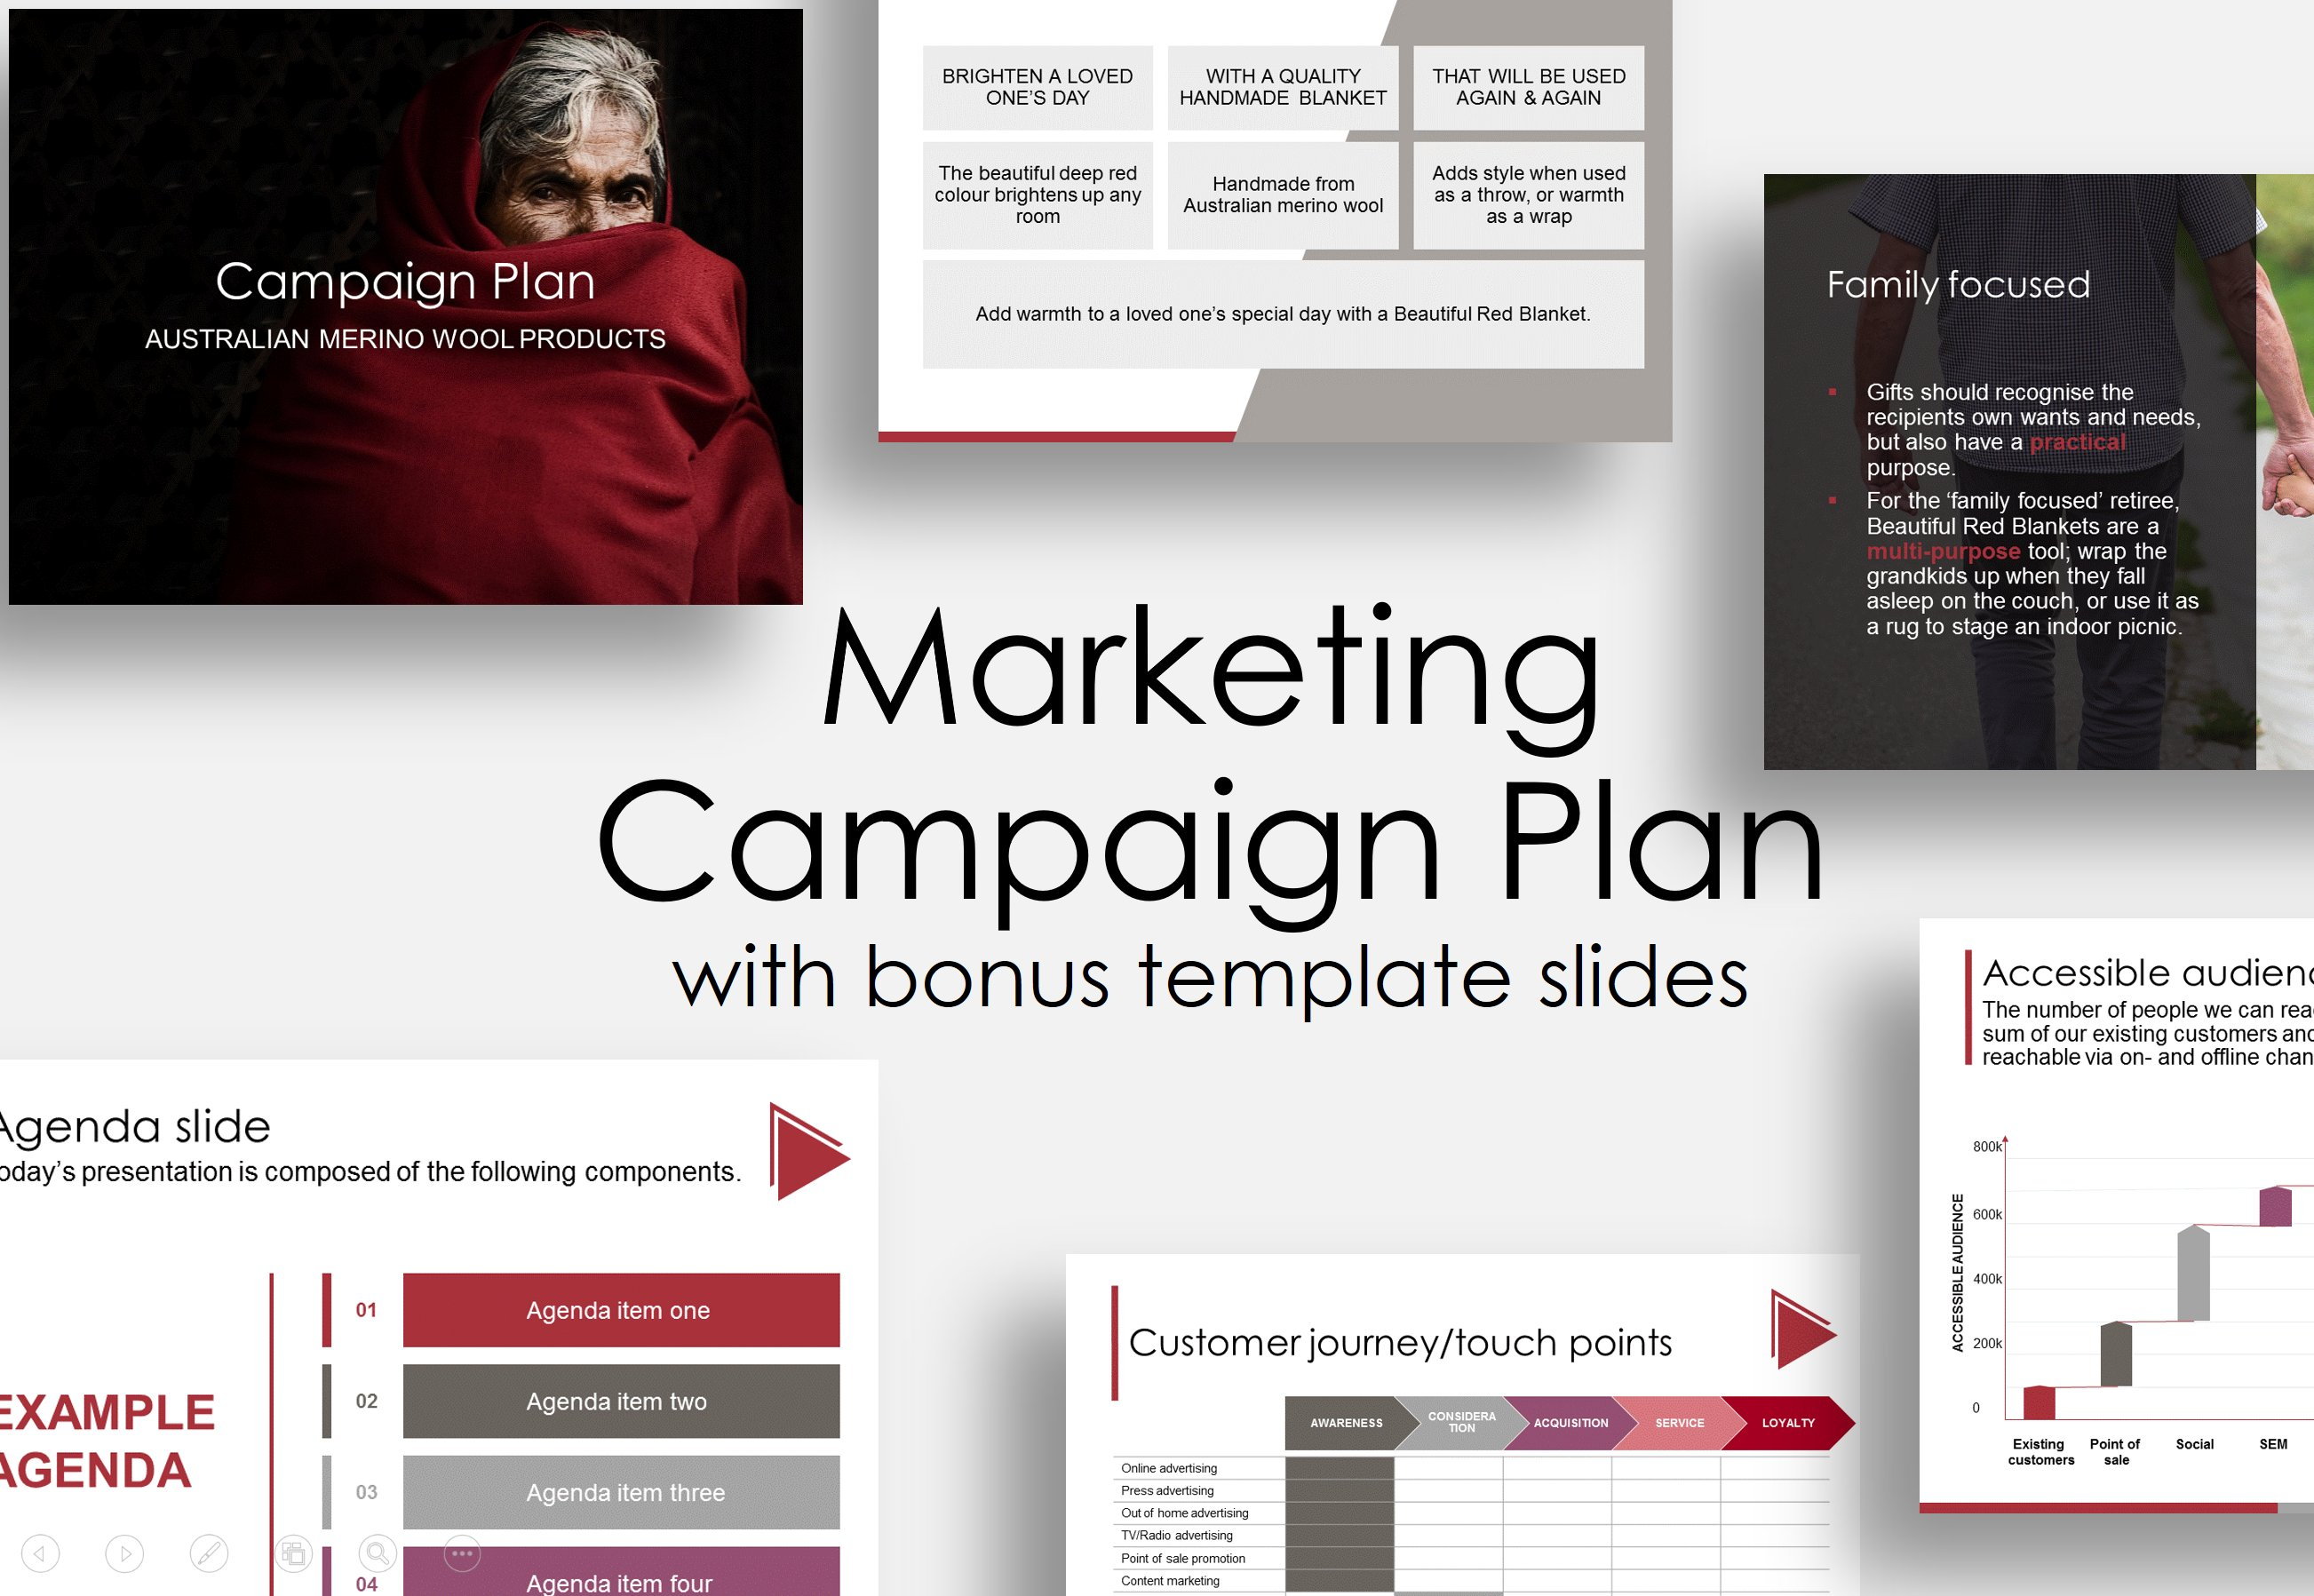 Marketing Campaign Plan Presentation Templates Creative Market - Marketing campaign template